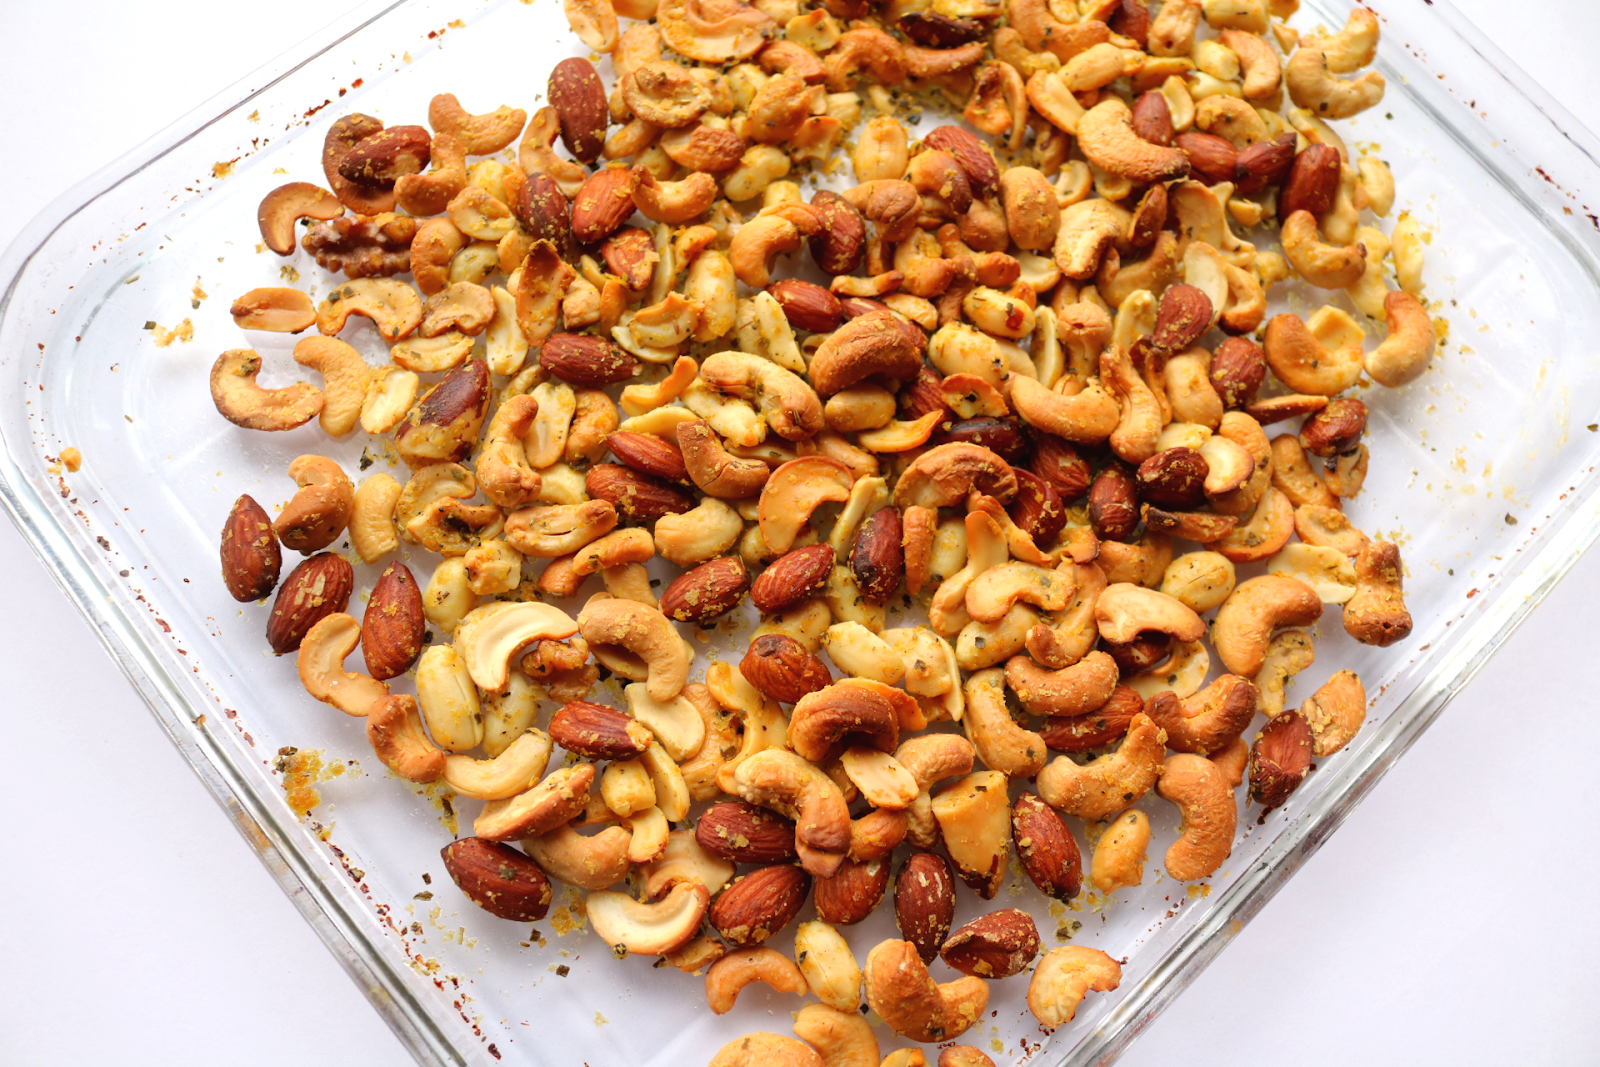 Easy Cheesy Herby Nuts (Vegan / Dairy-Free recipe) #Veganuary